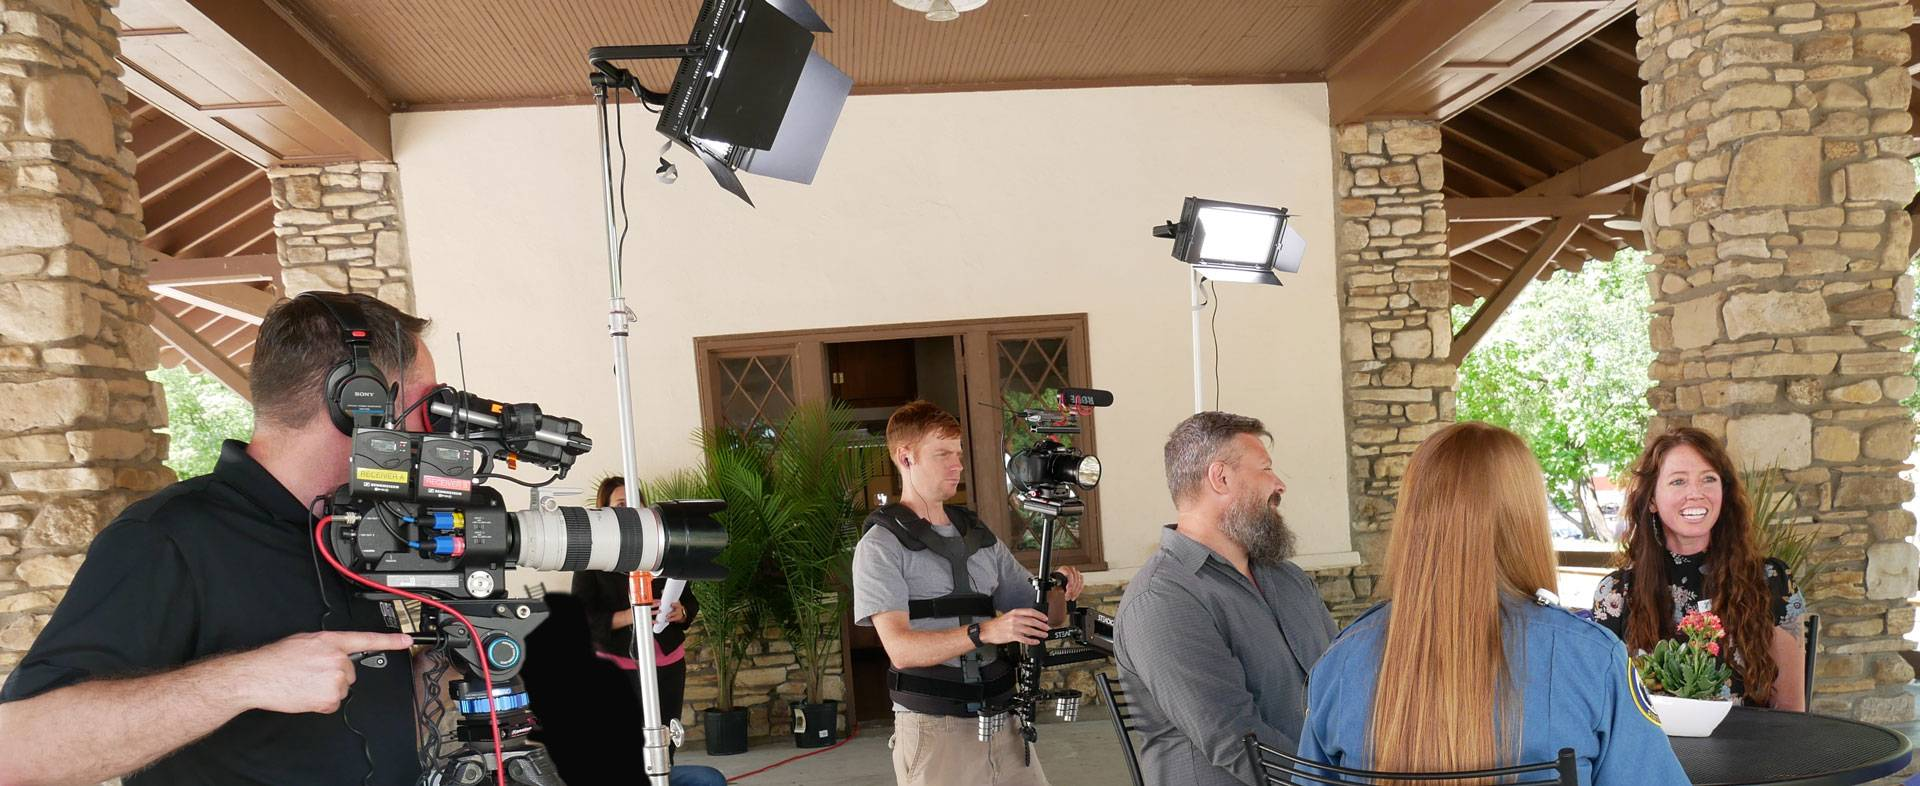 Video production company captures corporate commercials in Branson, Missouri